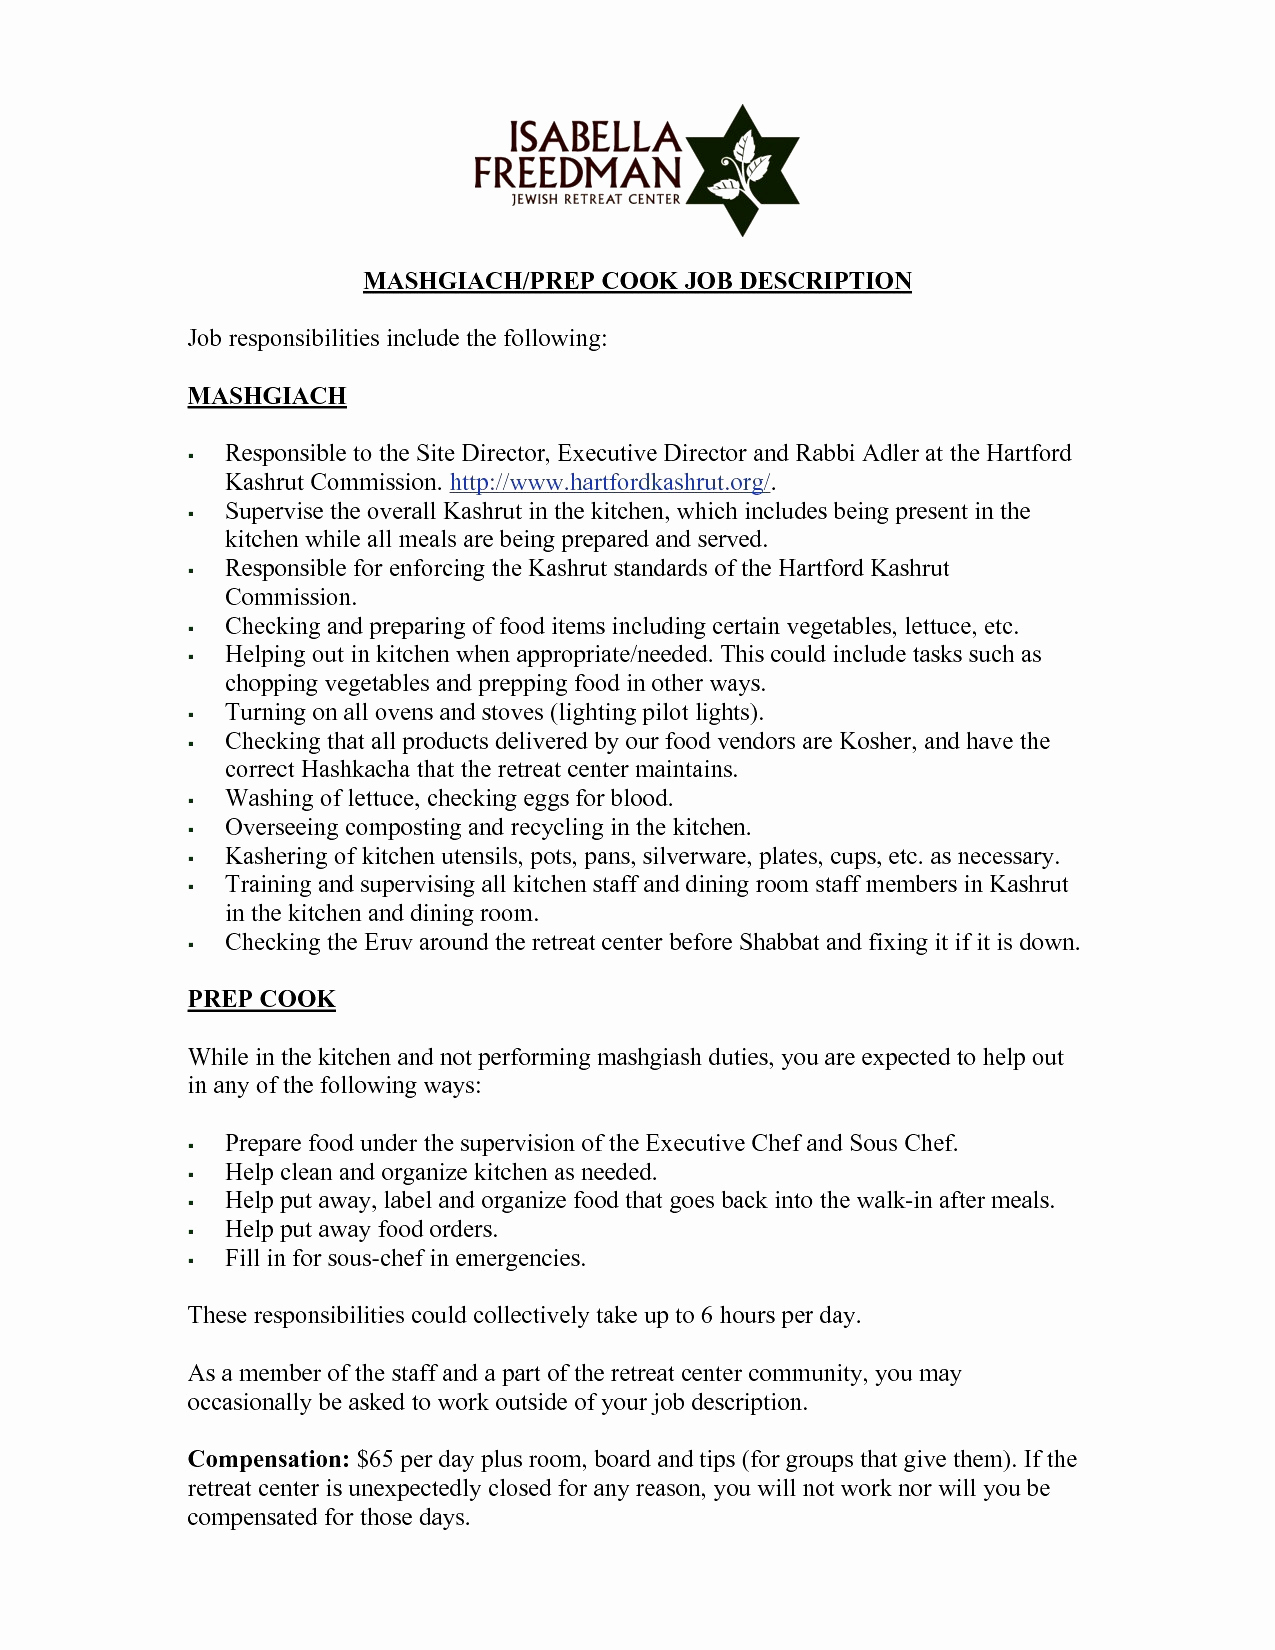 Receptionist Cover Letter Template Samples